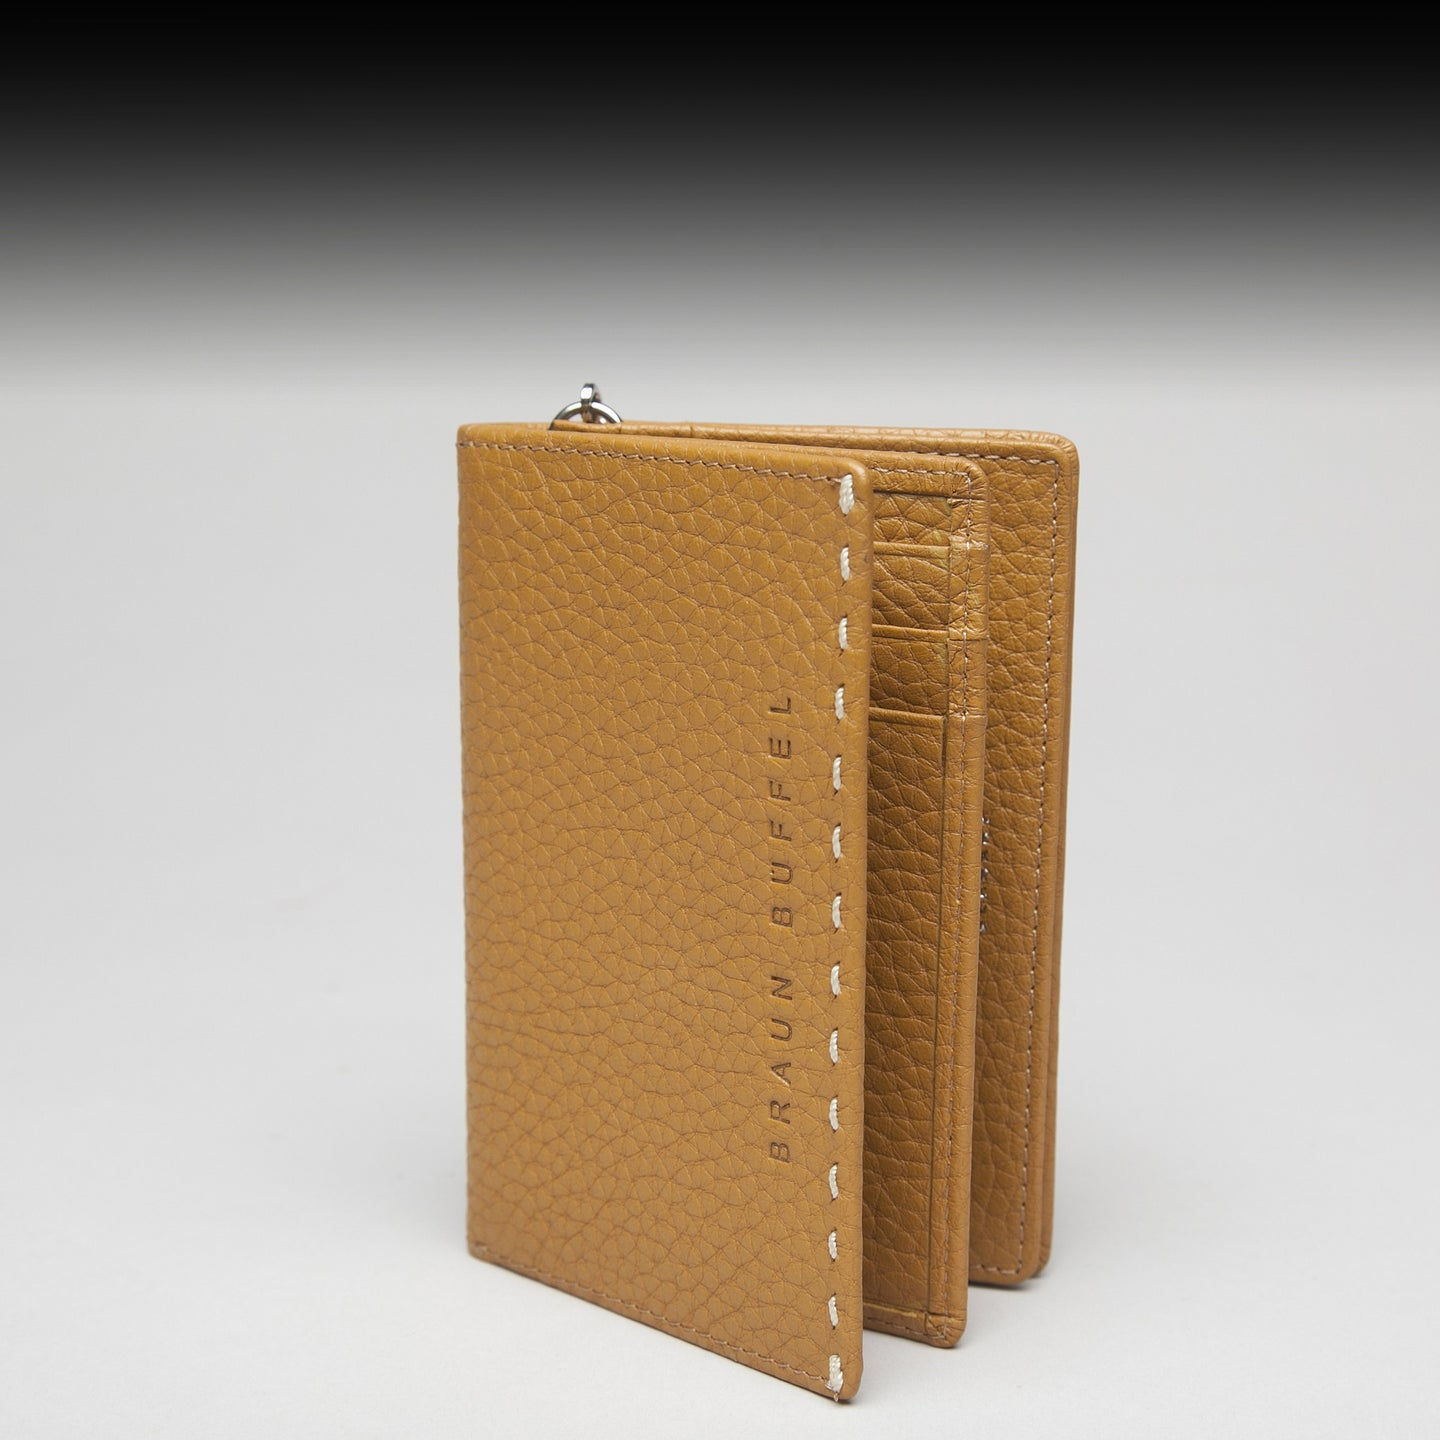 Beige Leather Wallet by Braun Büffel